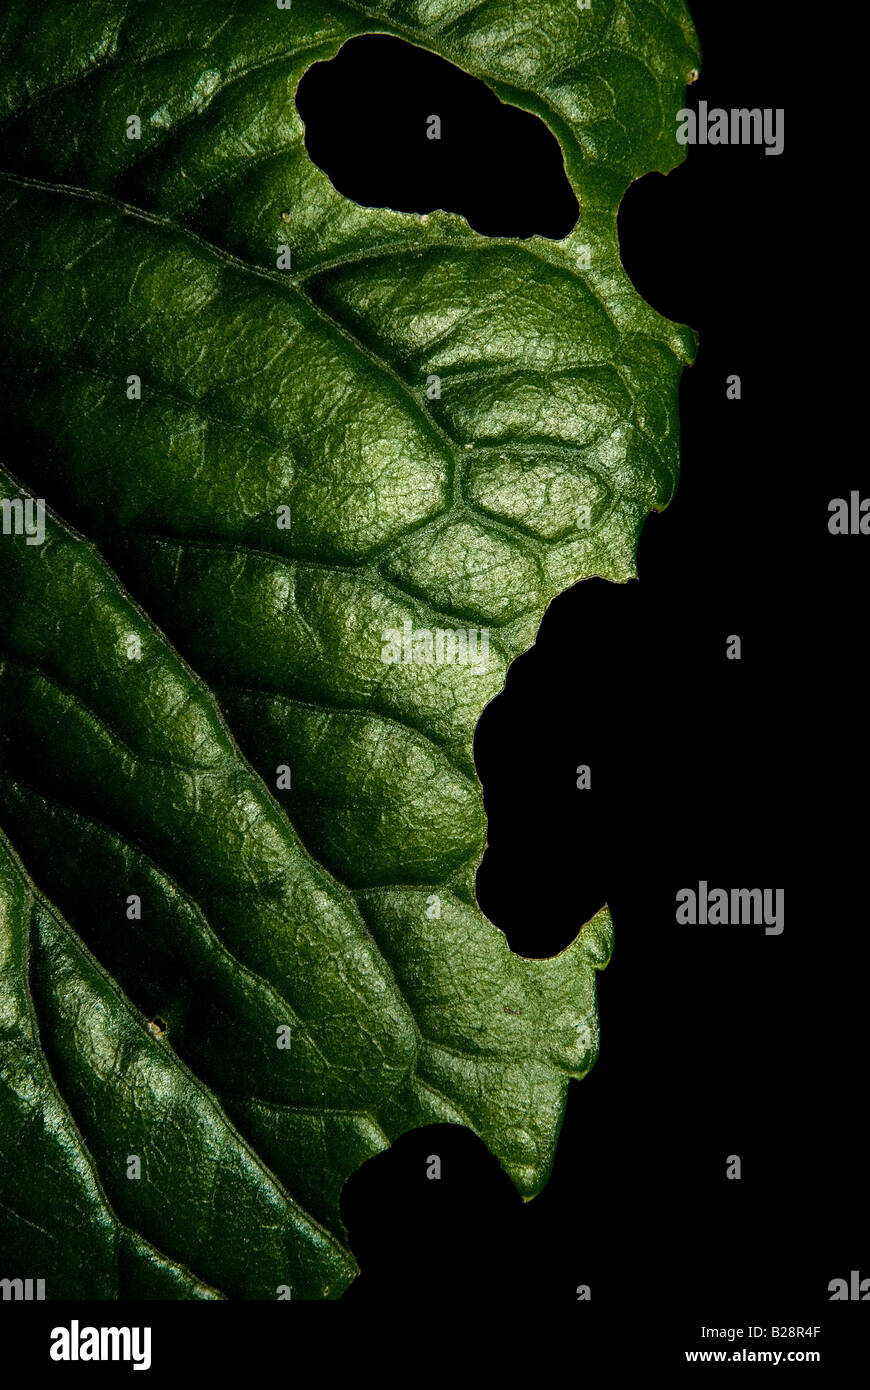 Green leaf with human expression of anger Stock Photo